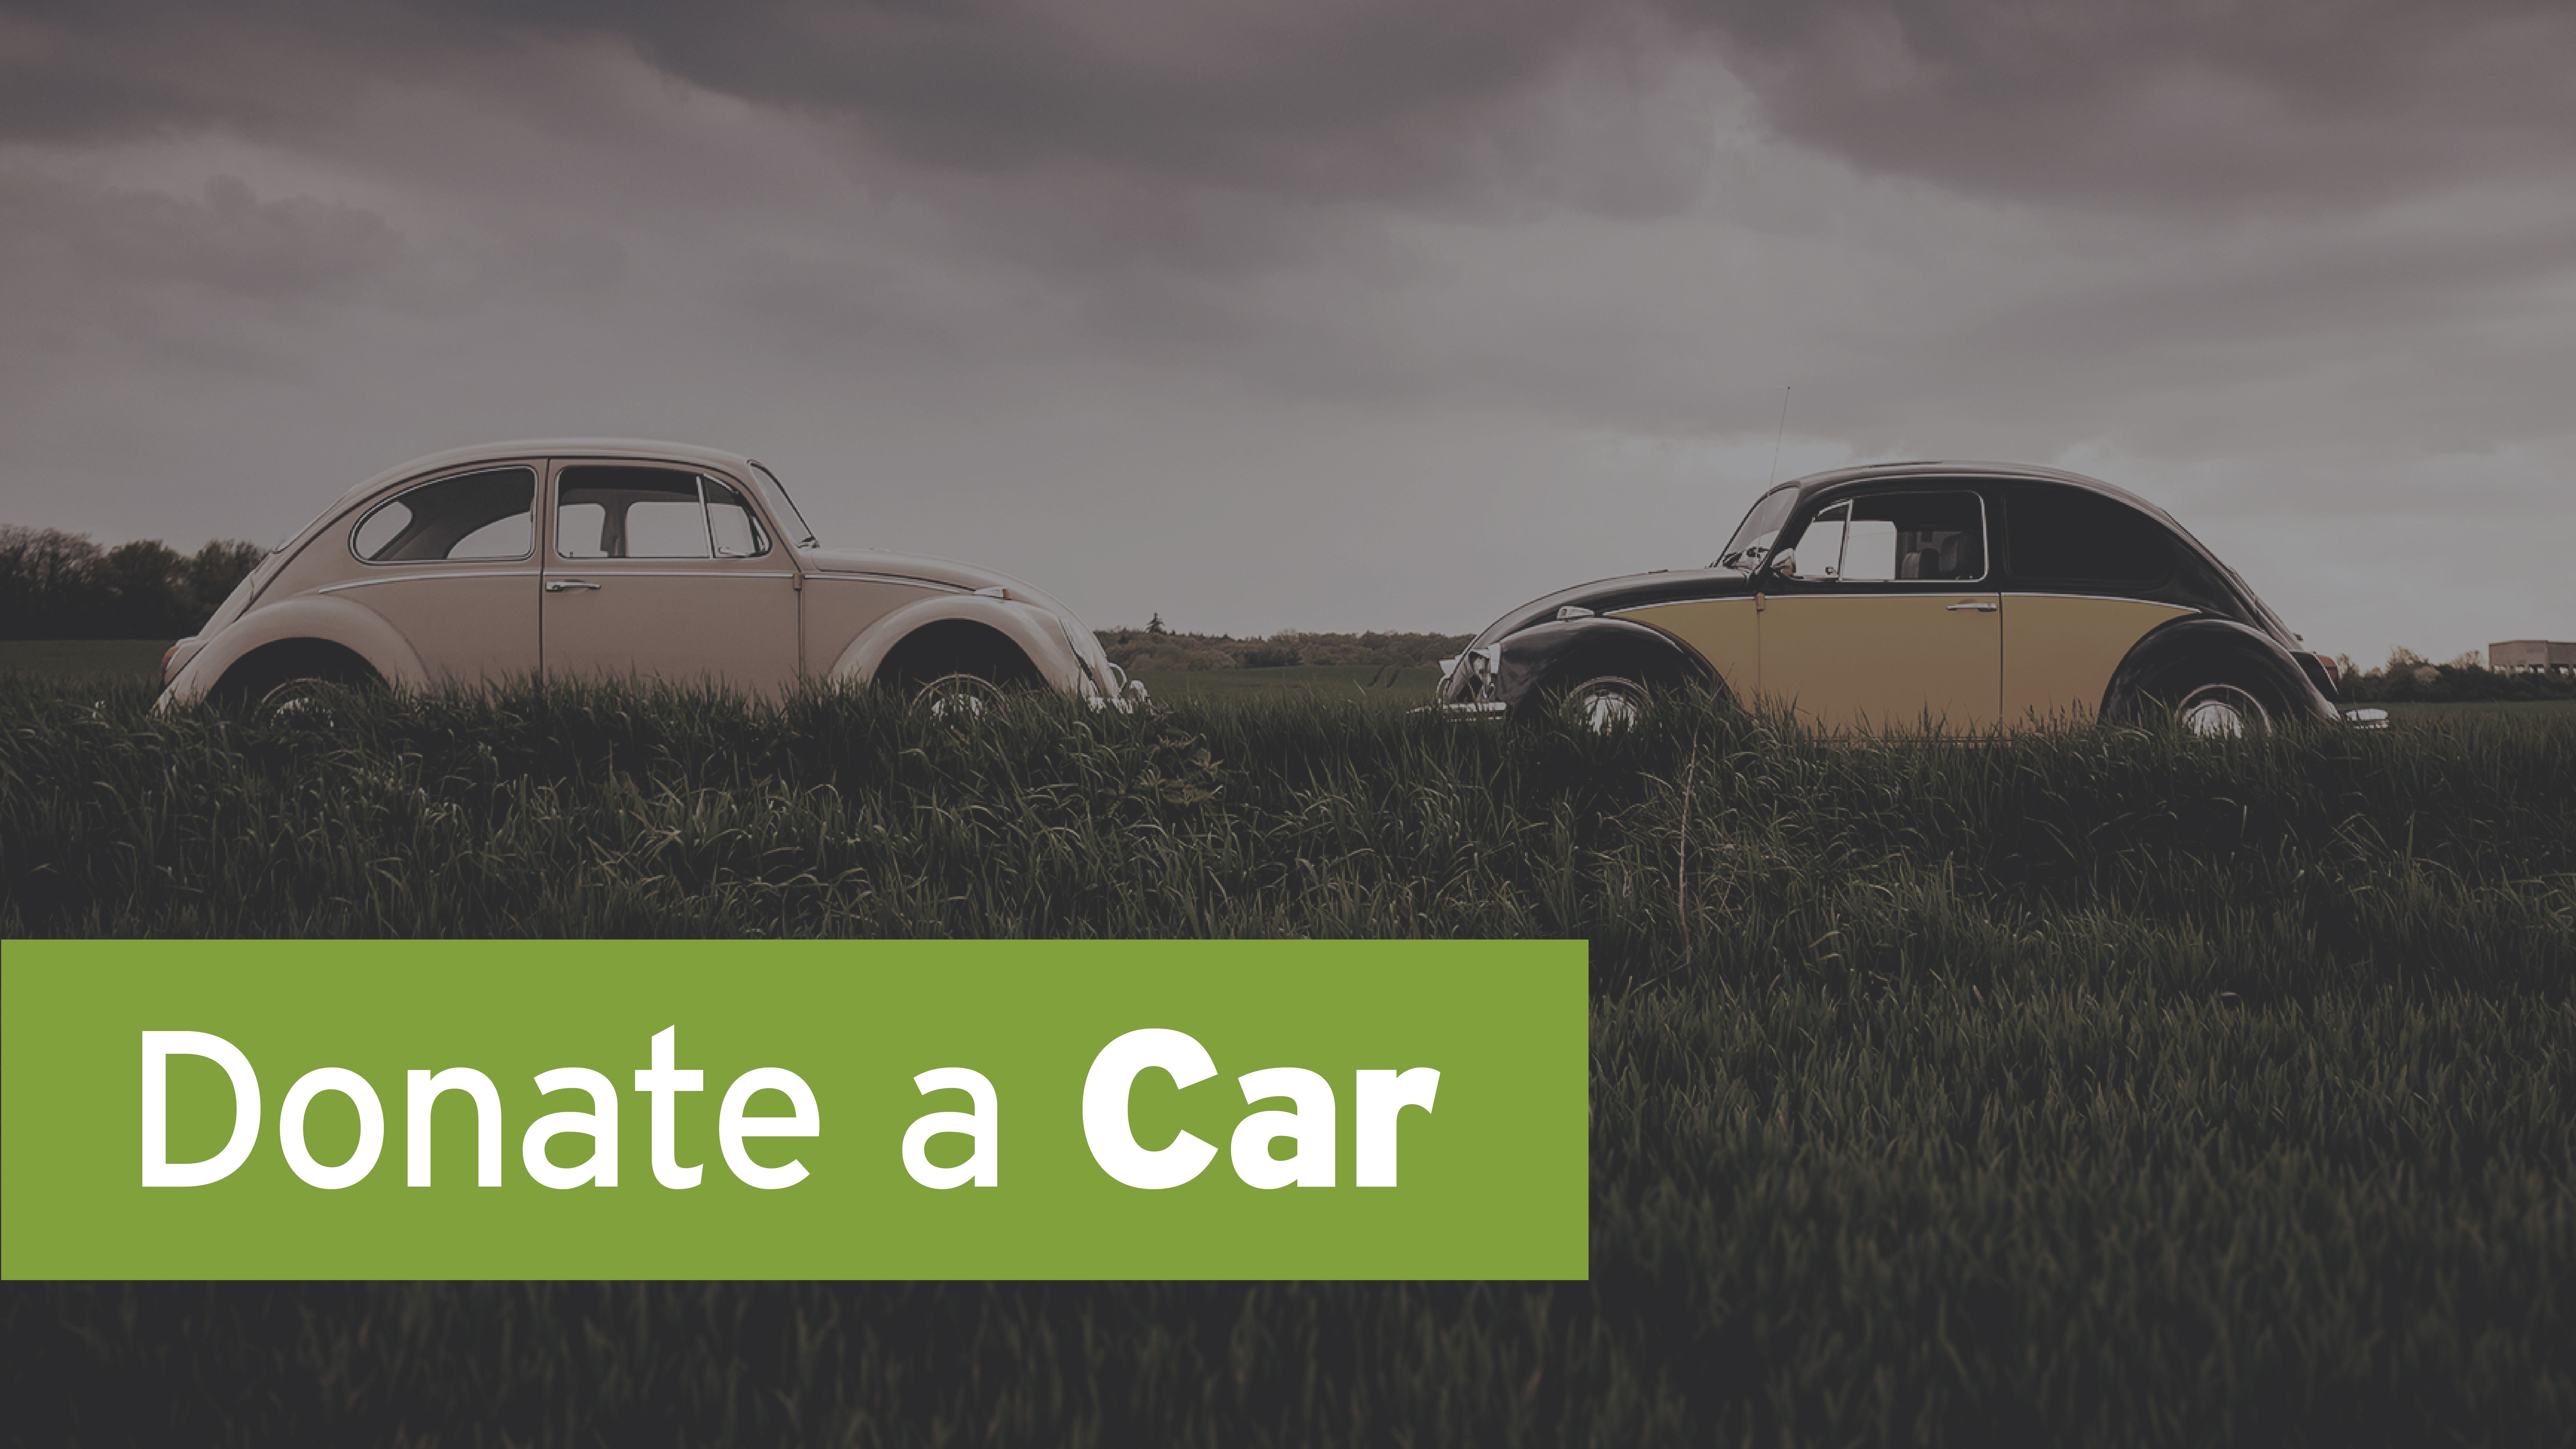 Donate a Car to UNC-TV